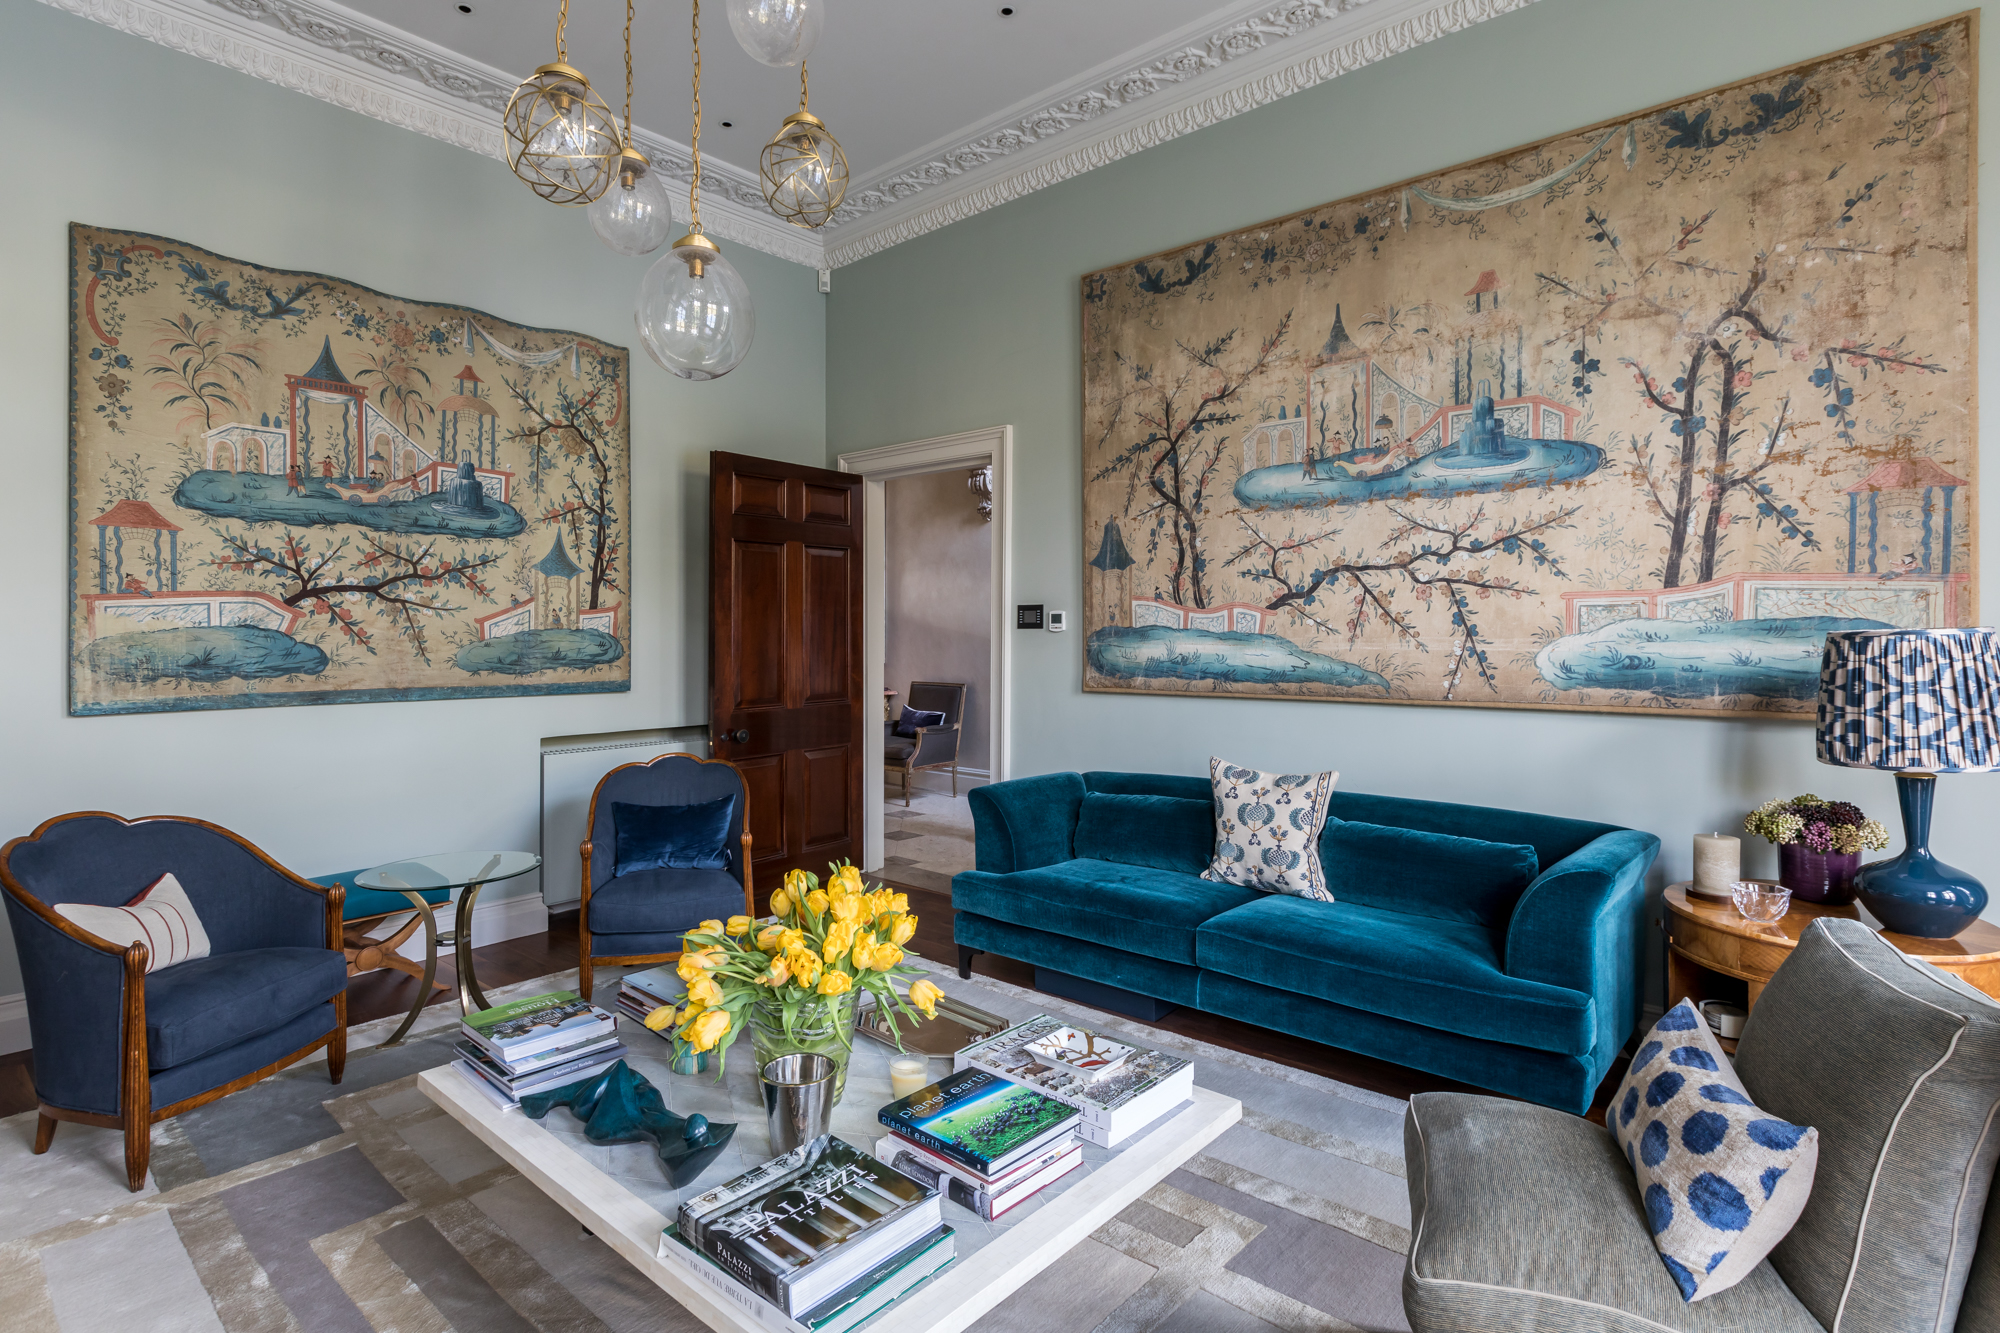 jonathan bond, interior photographer, two piece sofa & armchairs, holland park, london